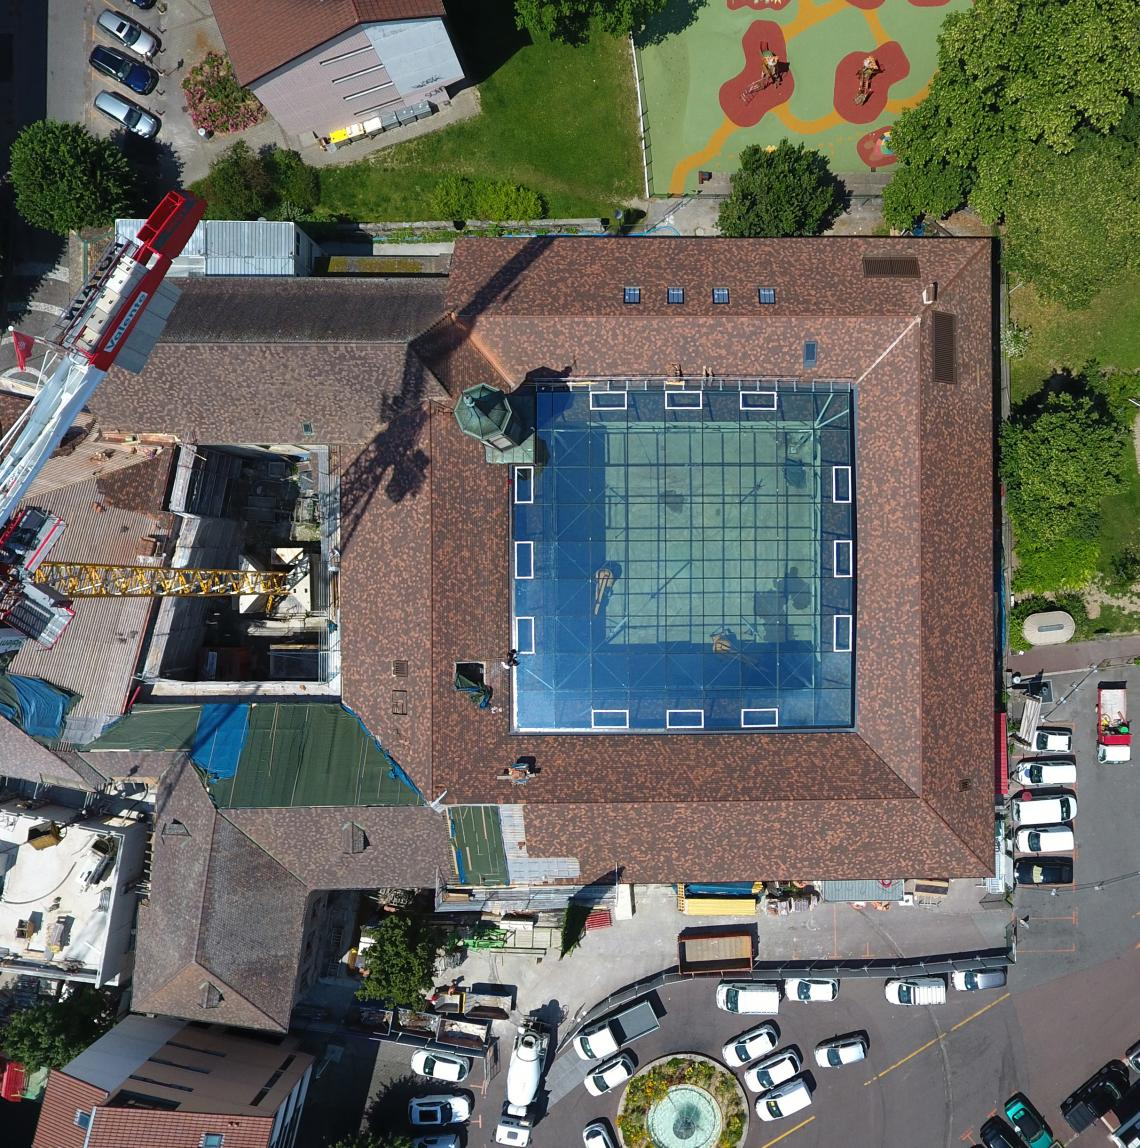 Glass roof in Thonon-les-Bains, drone view of cultural centre